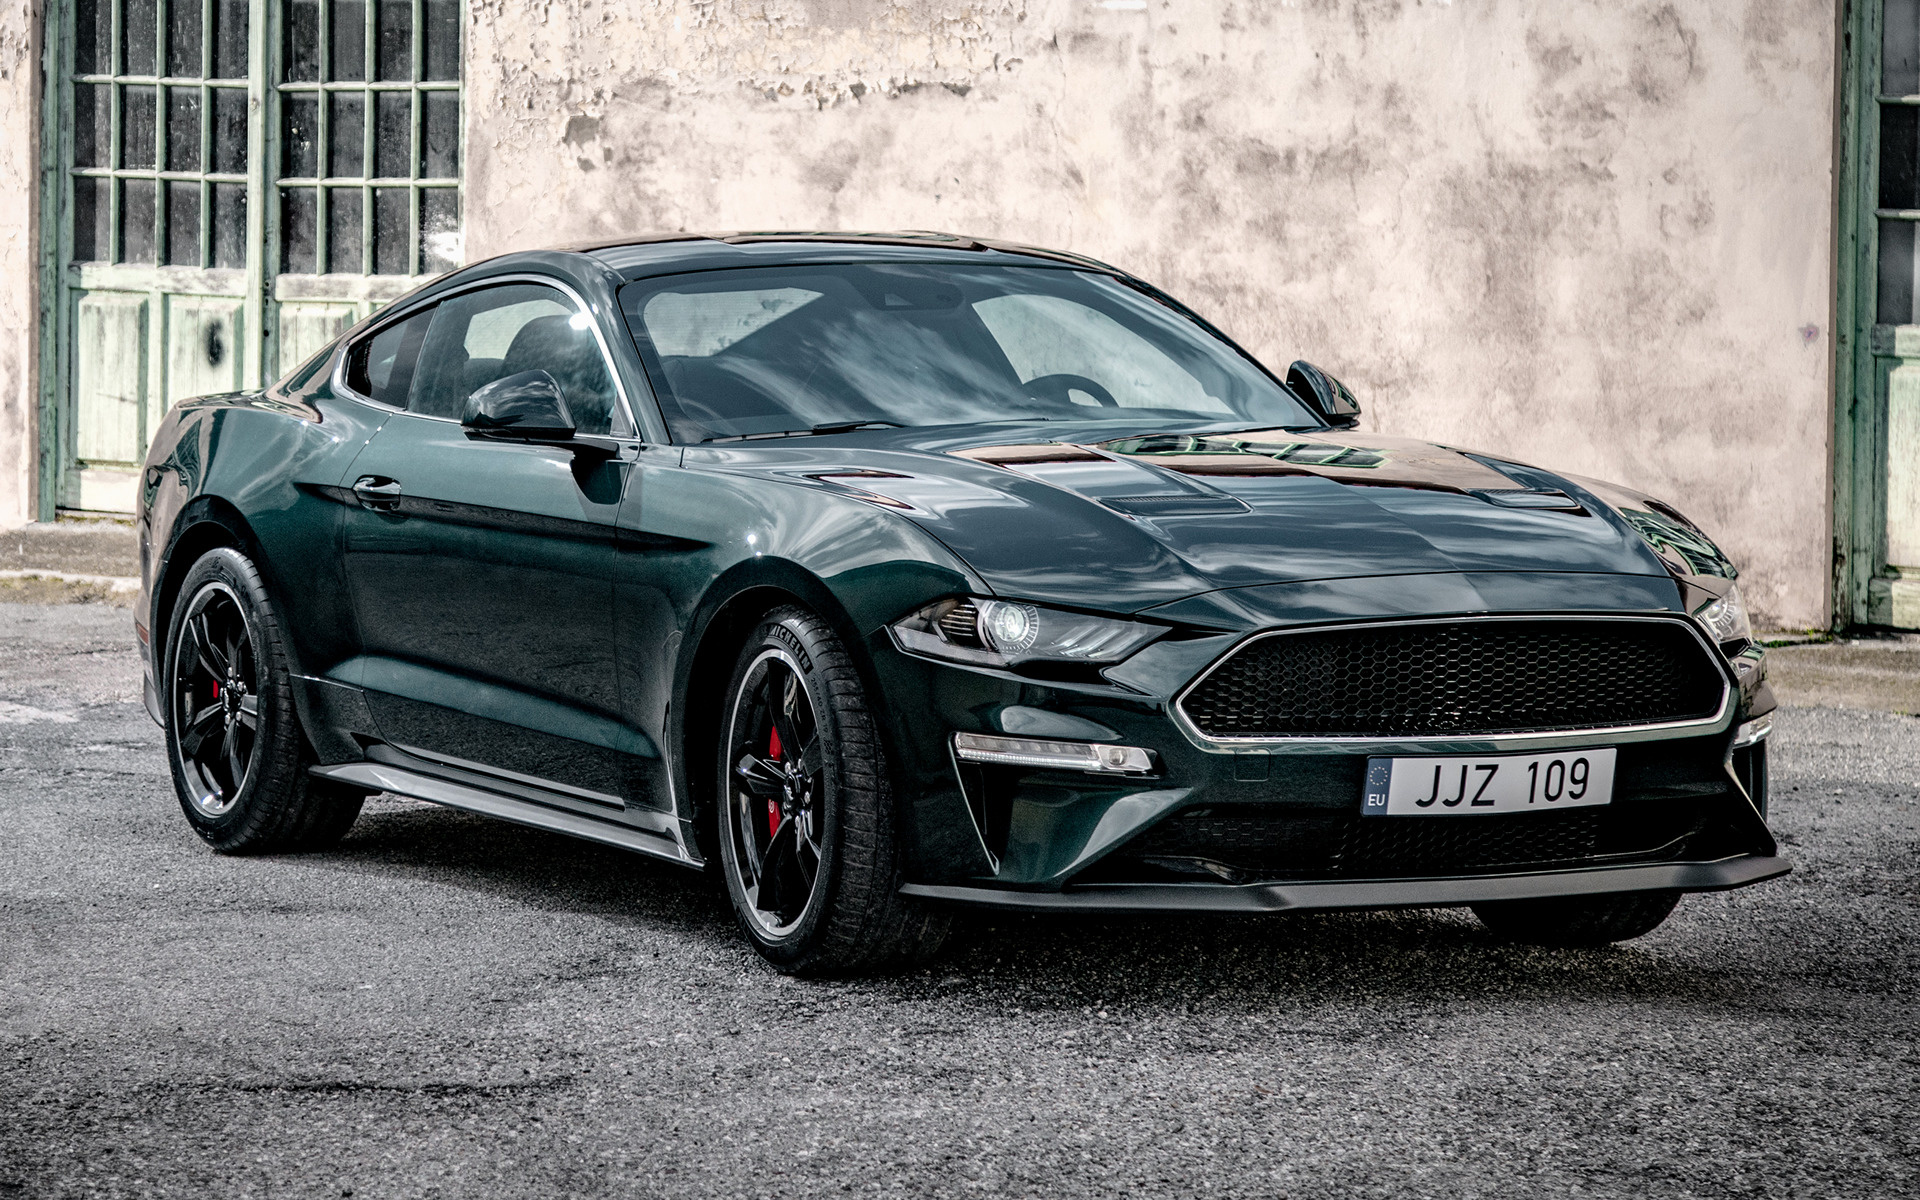 2019 Ford Mustang Bullitt (EU) - Wallpapers and HD Images | Car Pixel